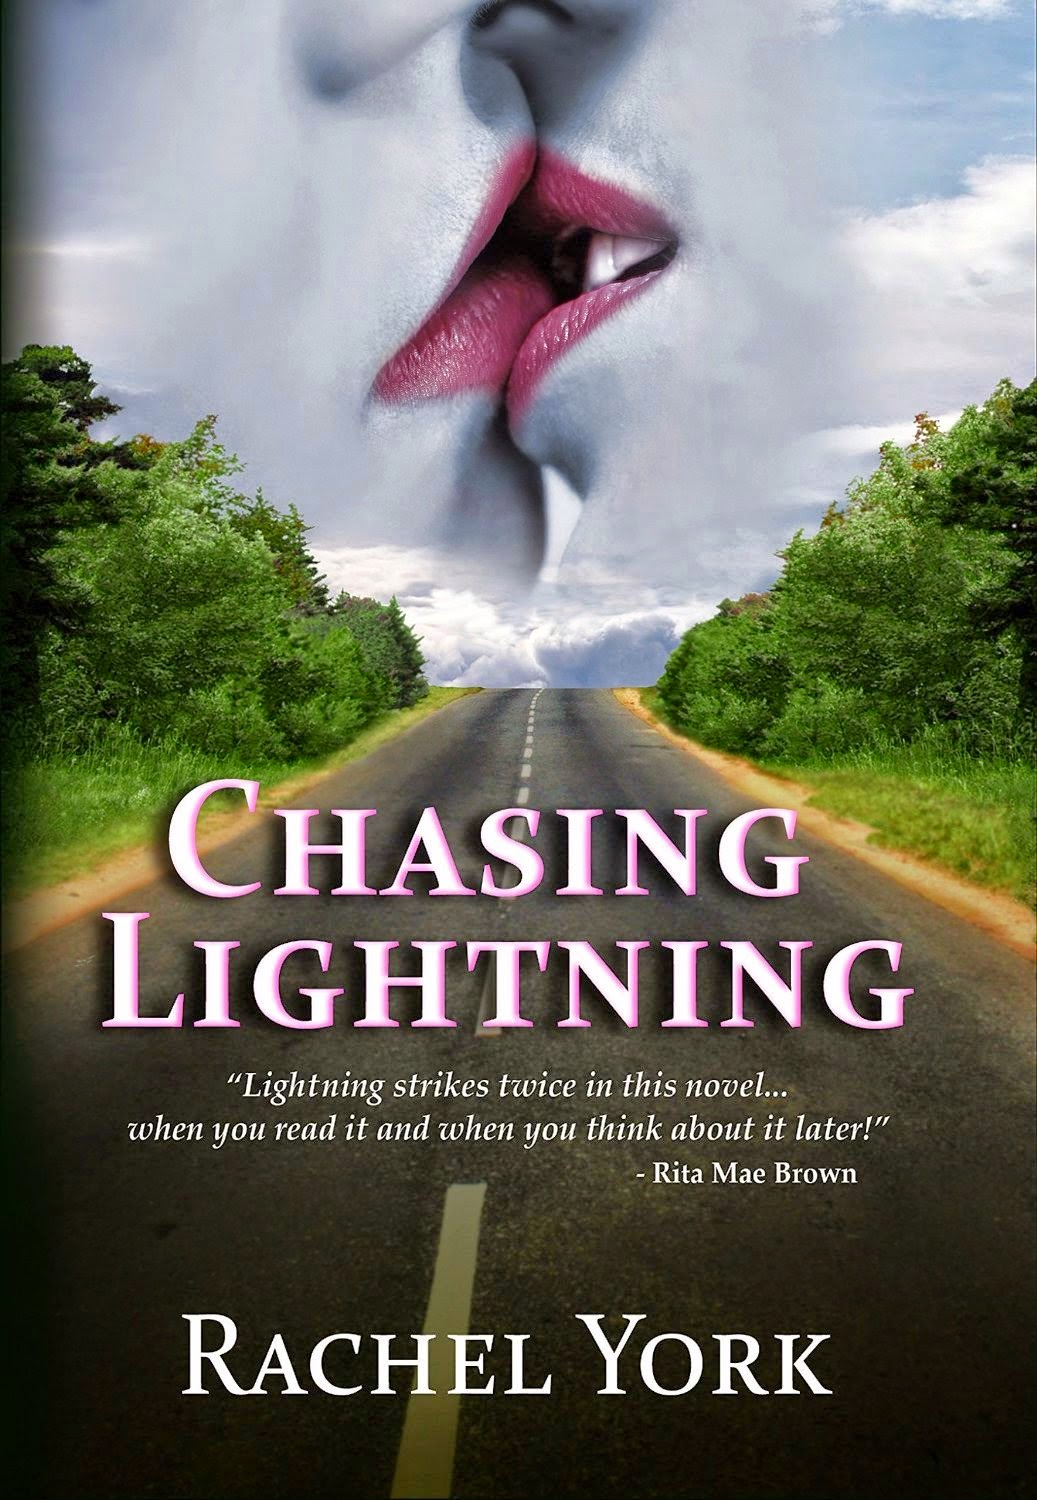 Fall in love with Chasing Lightning